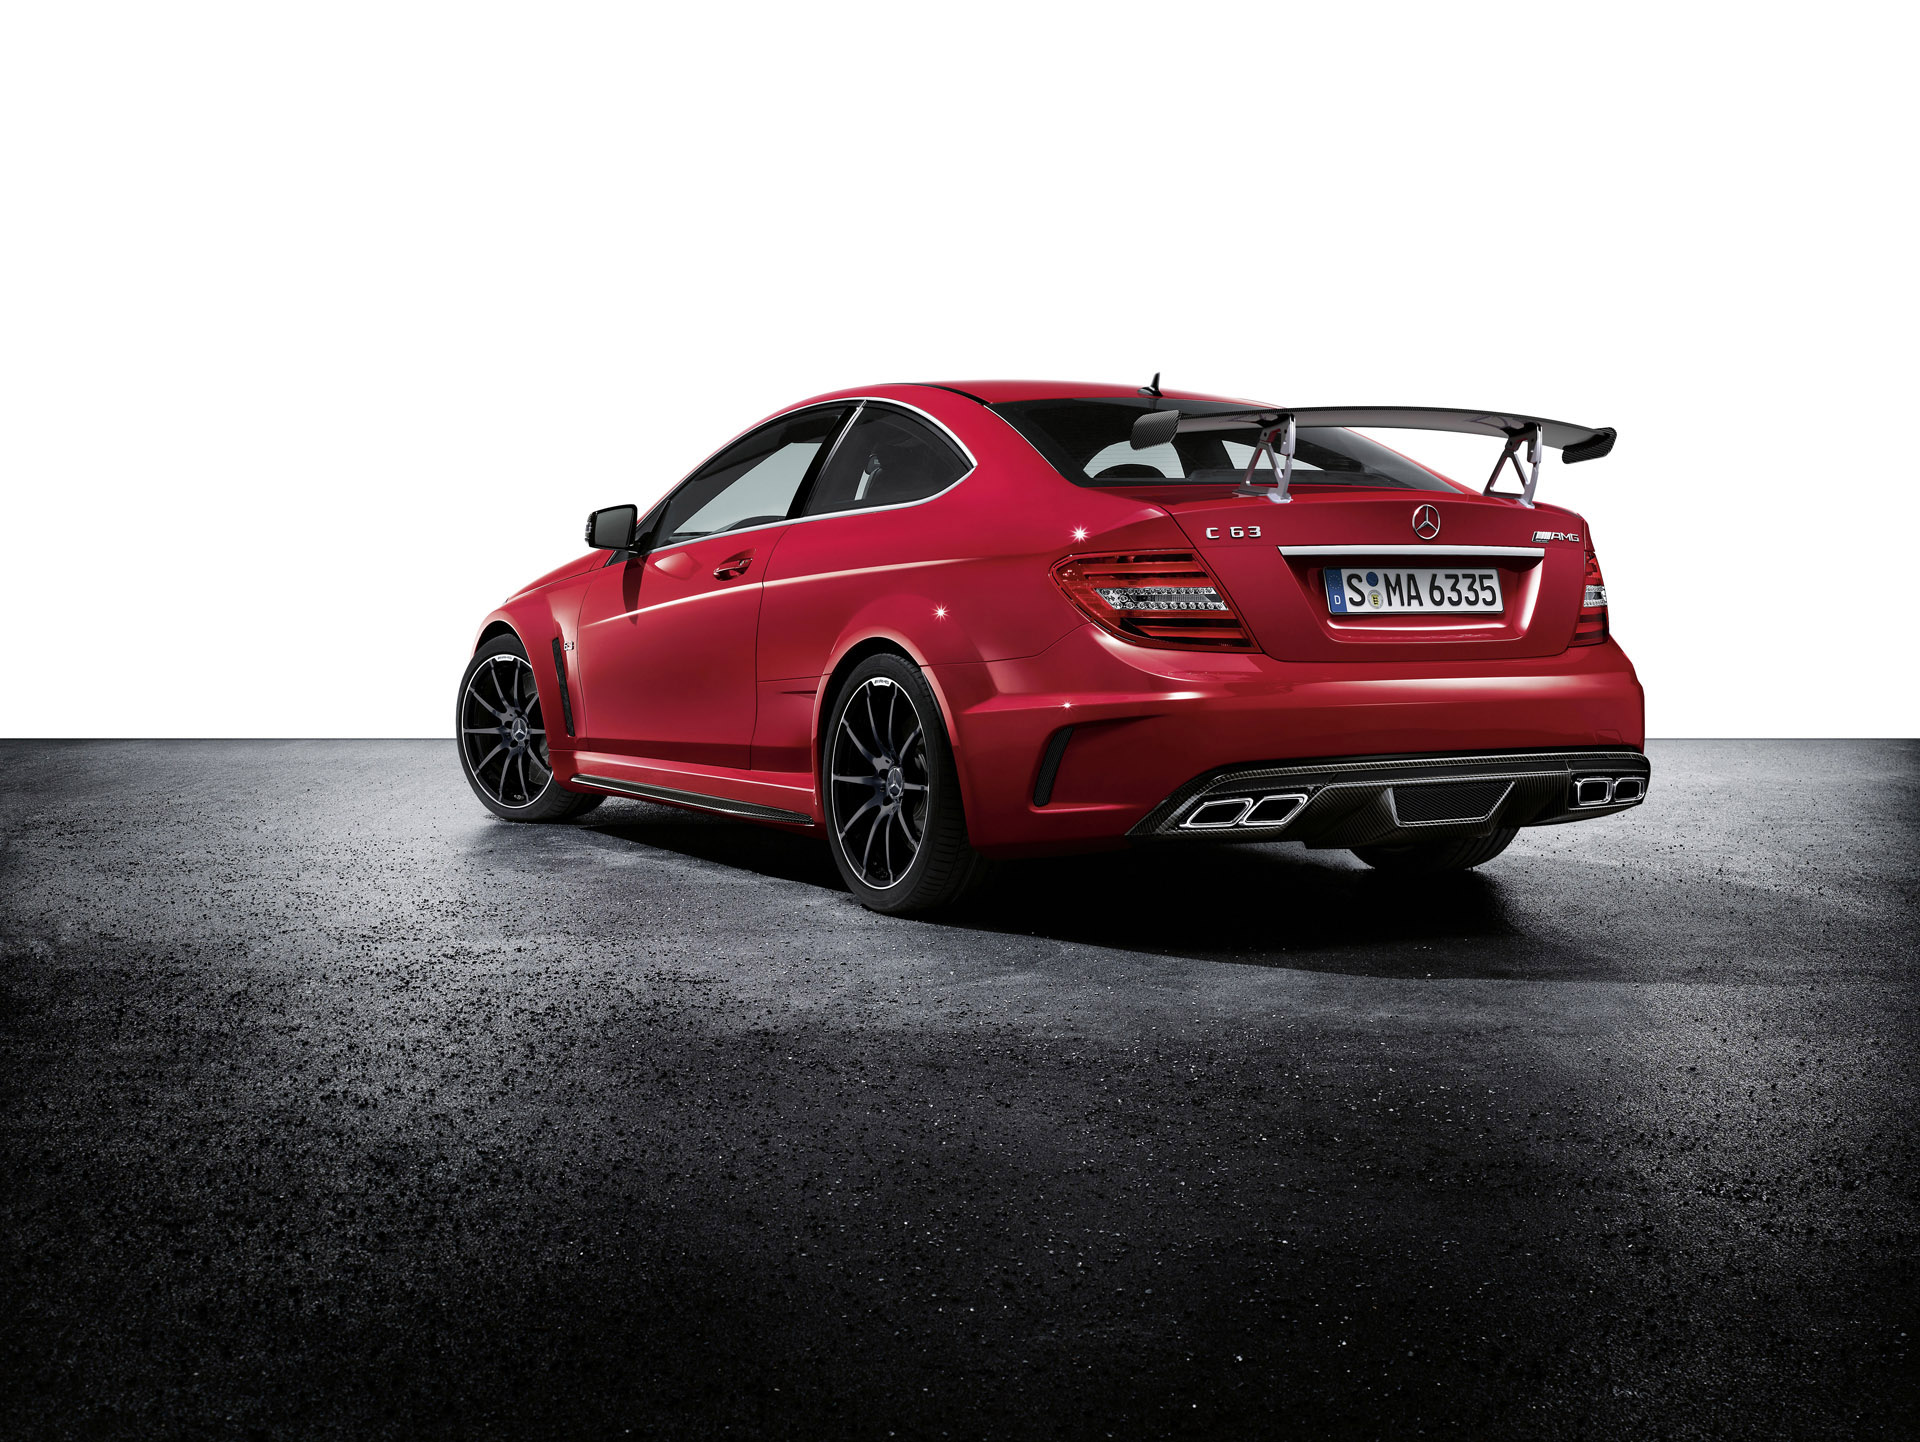 Full Force Diesel >> Mercedes C63 AMG Black Series is now Sold Out - ForceGT.com